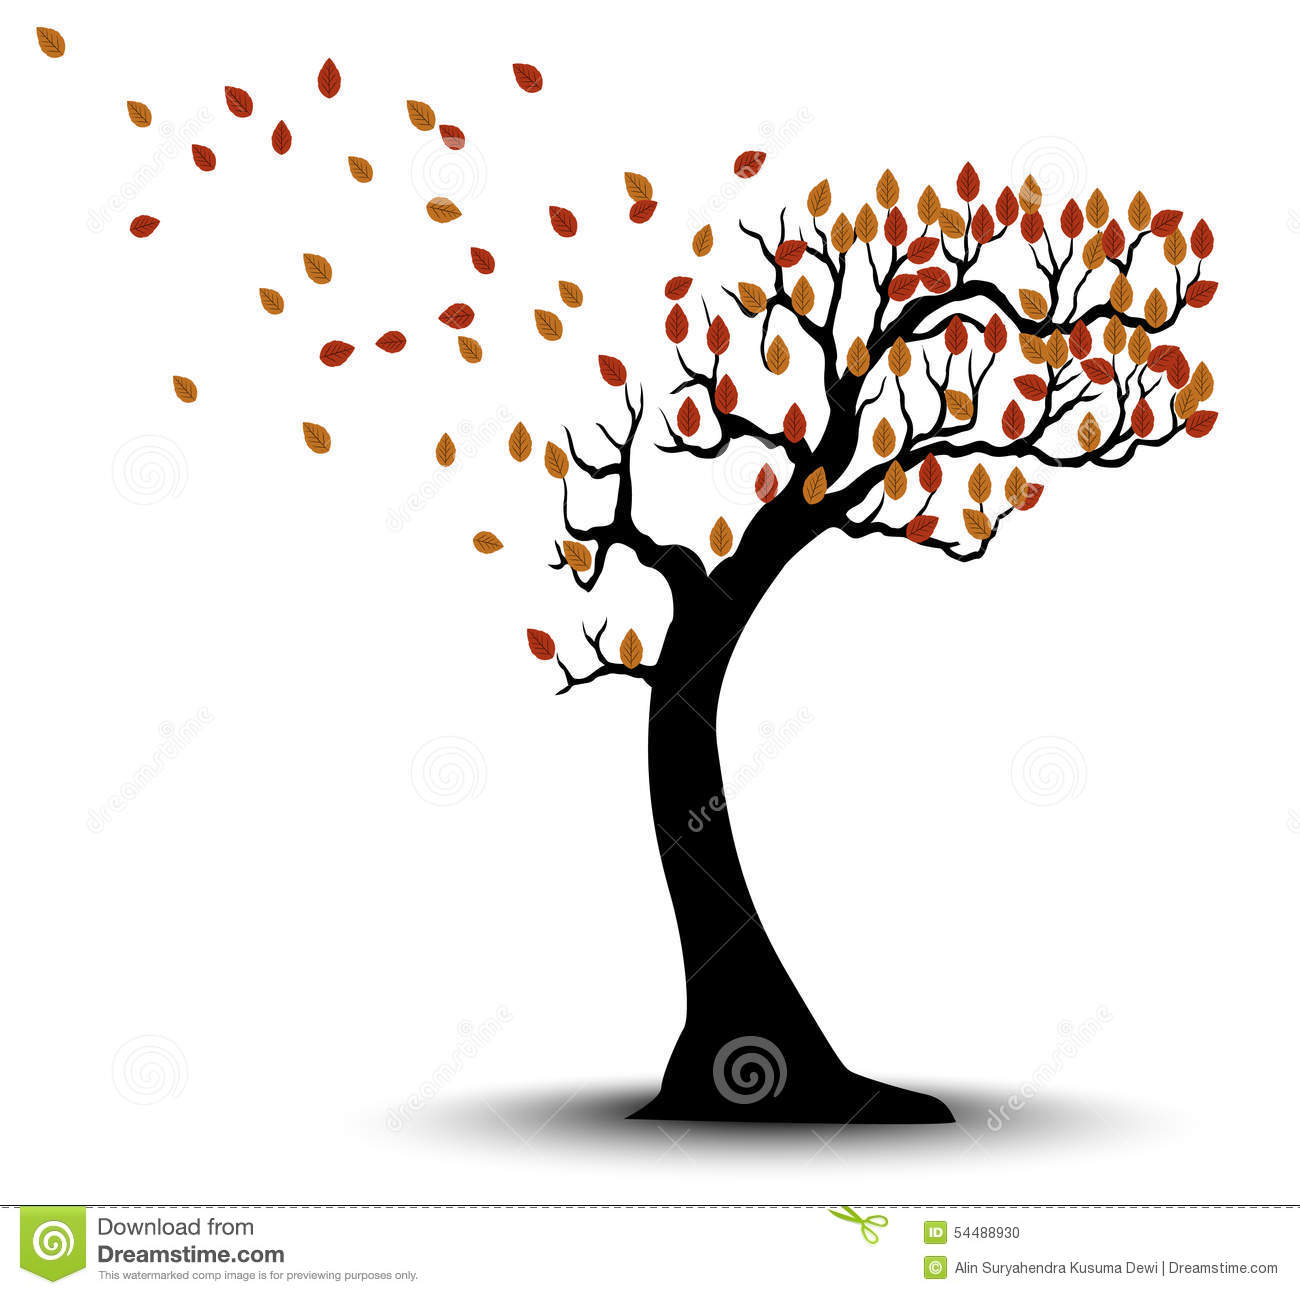 Most popular tags for this image include: tree, autumn, black, fog ...